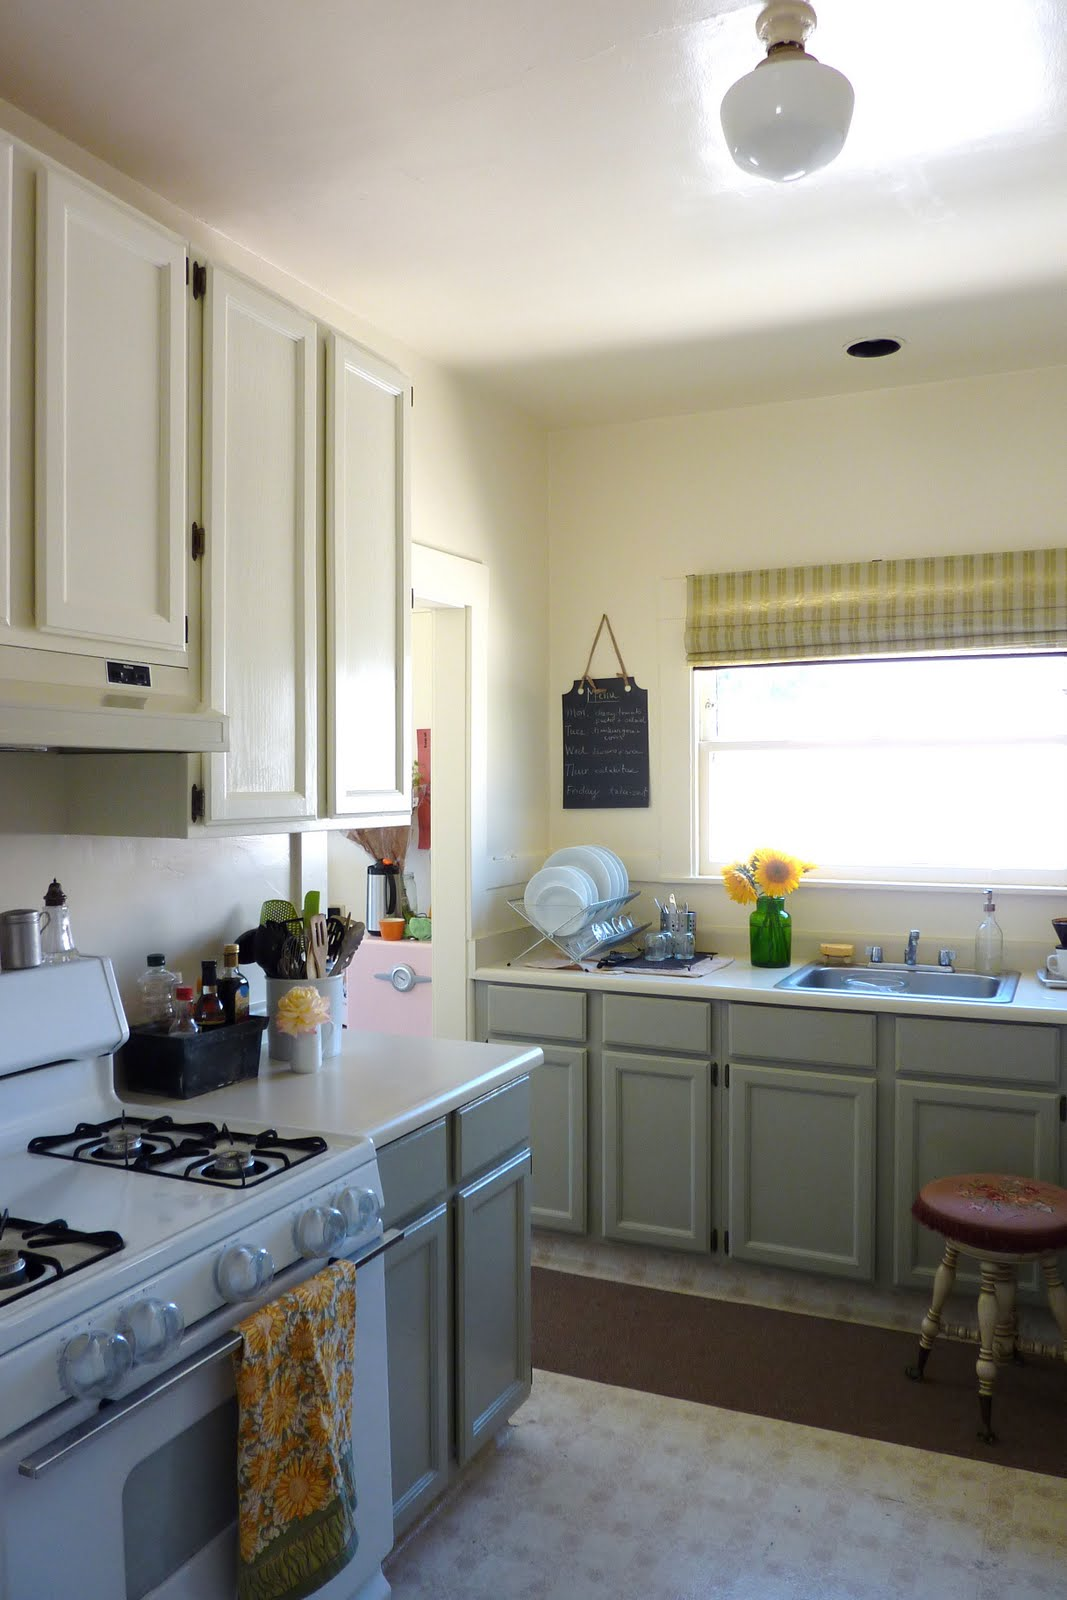 buy white kitchen cabinets glacier bay faucet repair where can i cabinet doors